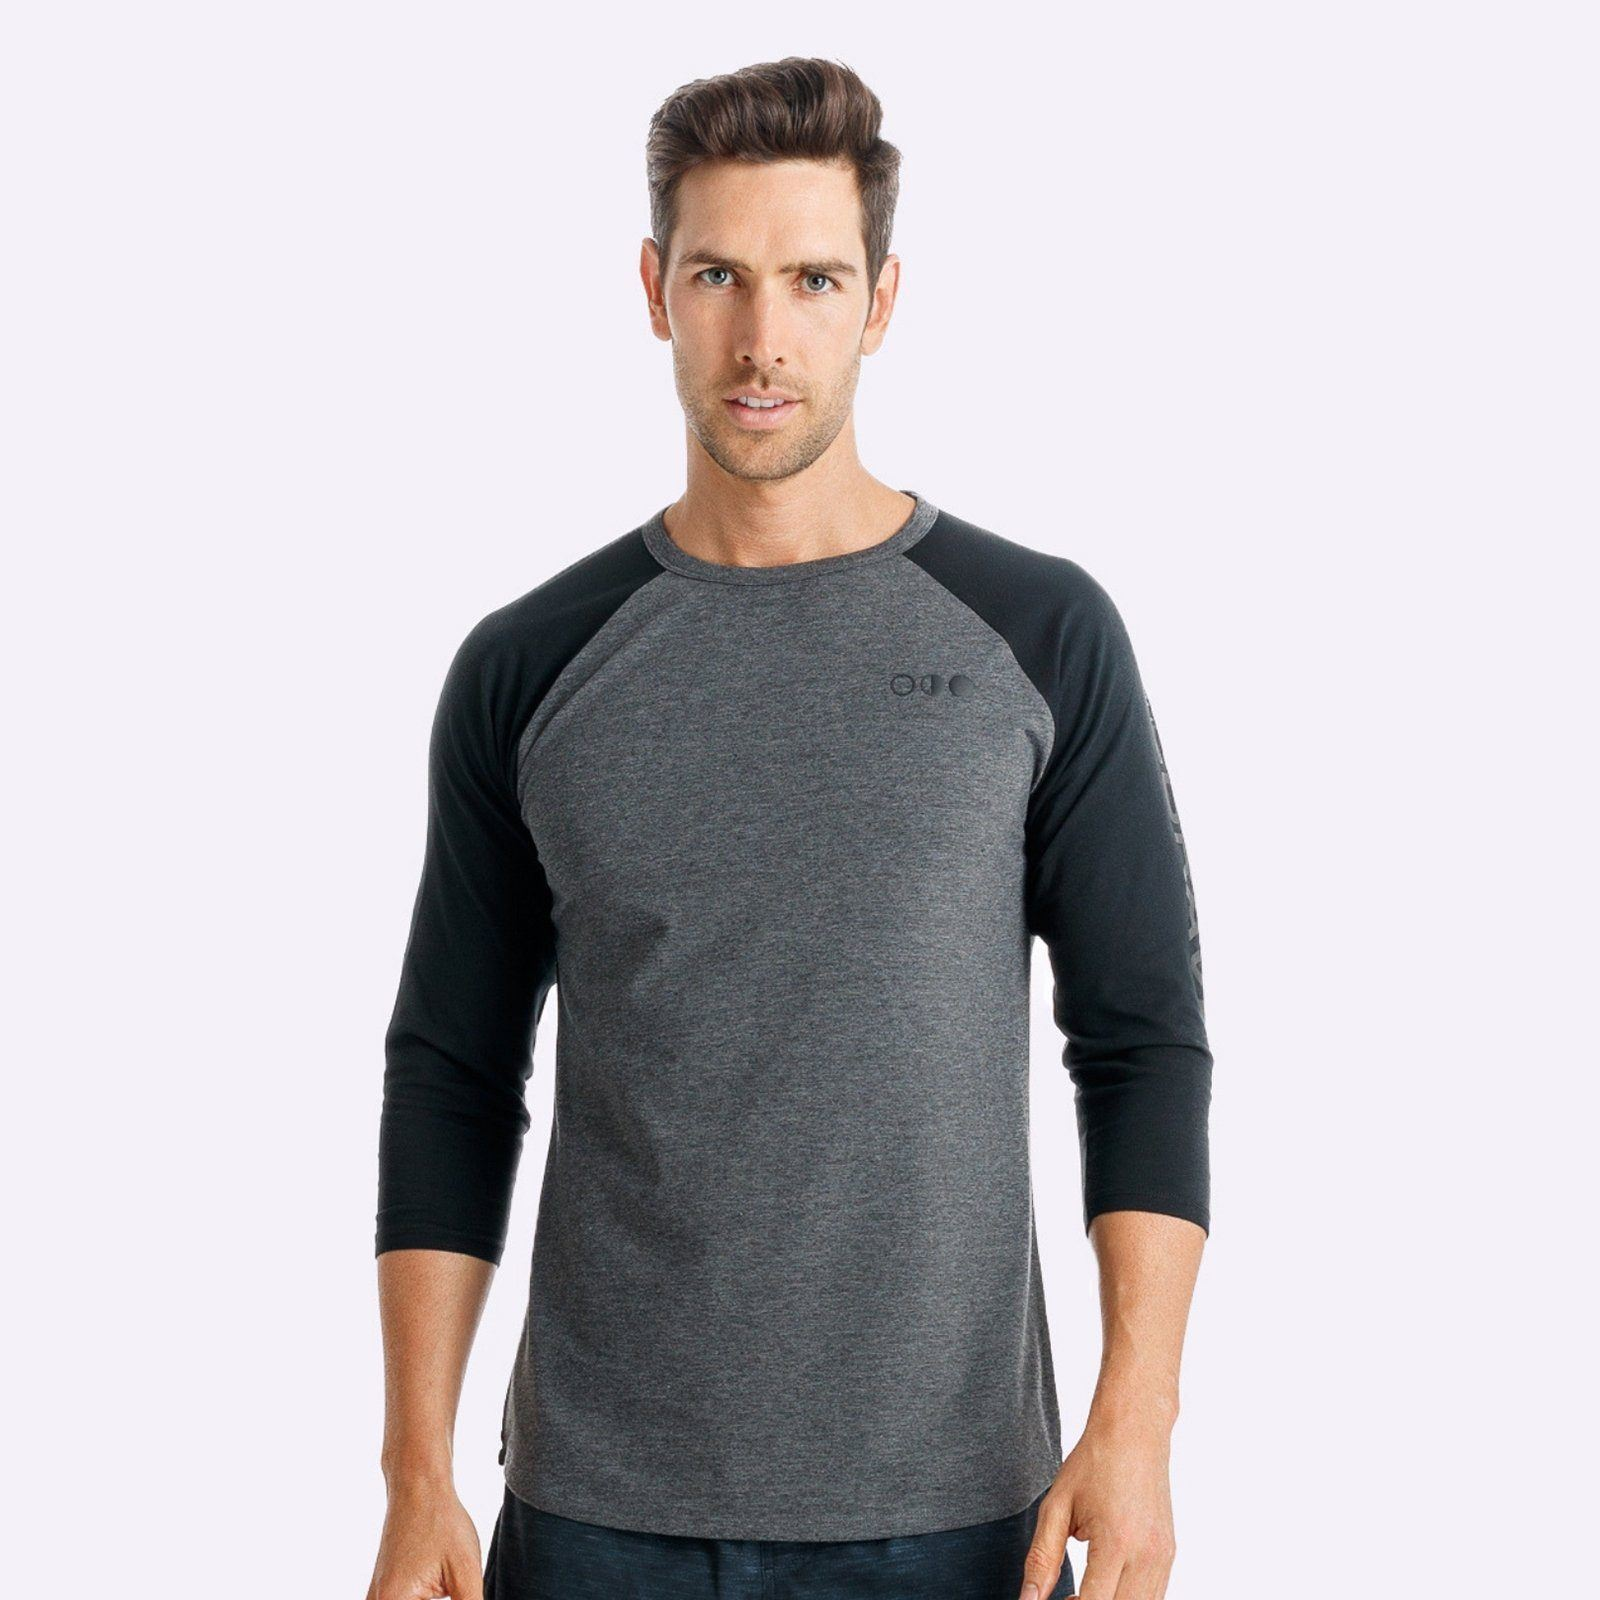 The Brave - Men's Adventure Raglan Shirt - Charcoal Marle/Black/Black